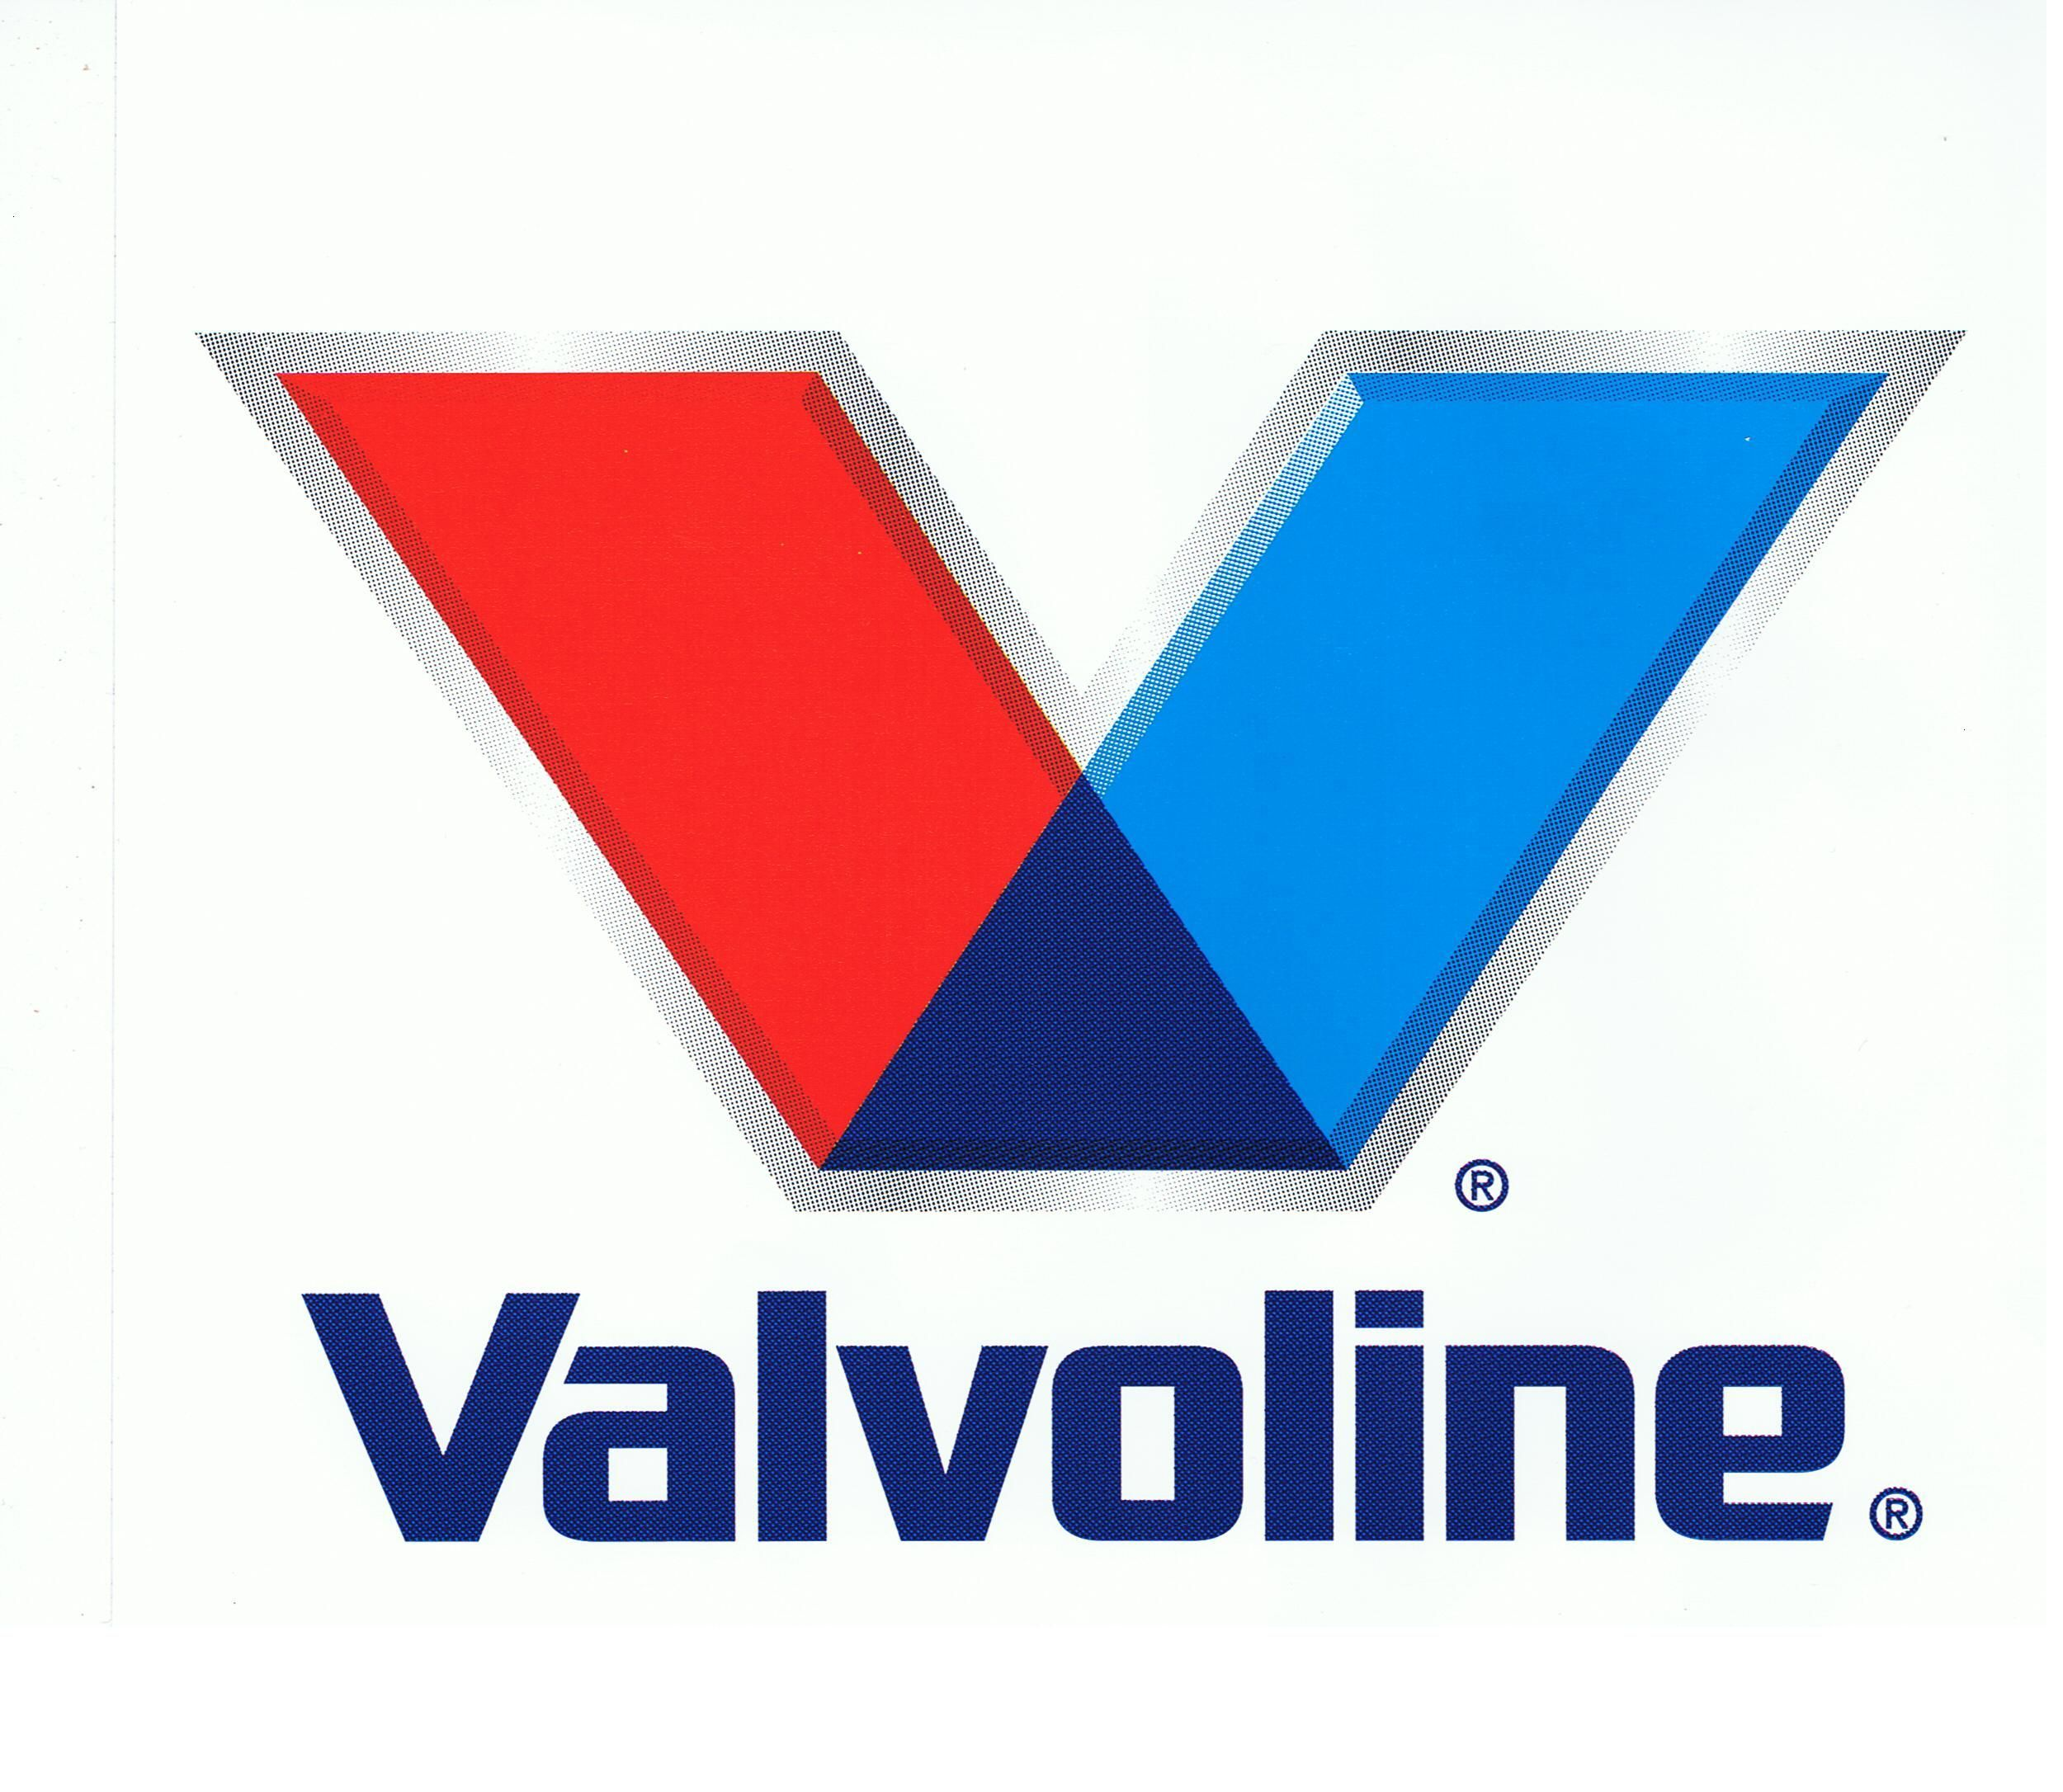 valvoline   Google Search Car related logos Best logo design 2500x2172